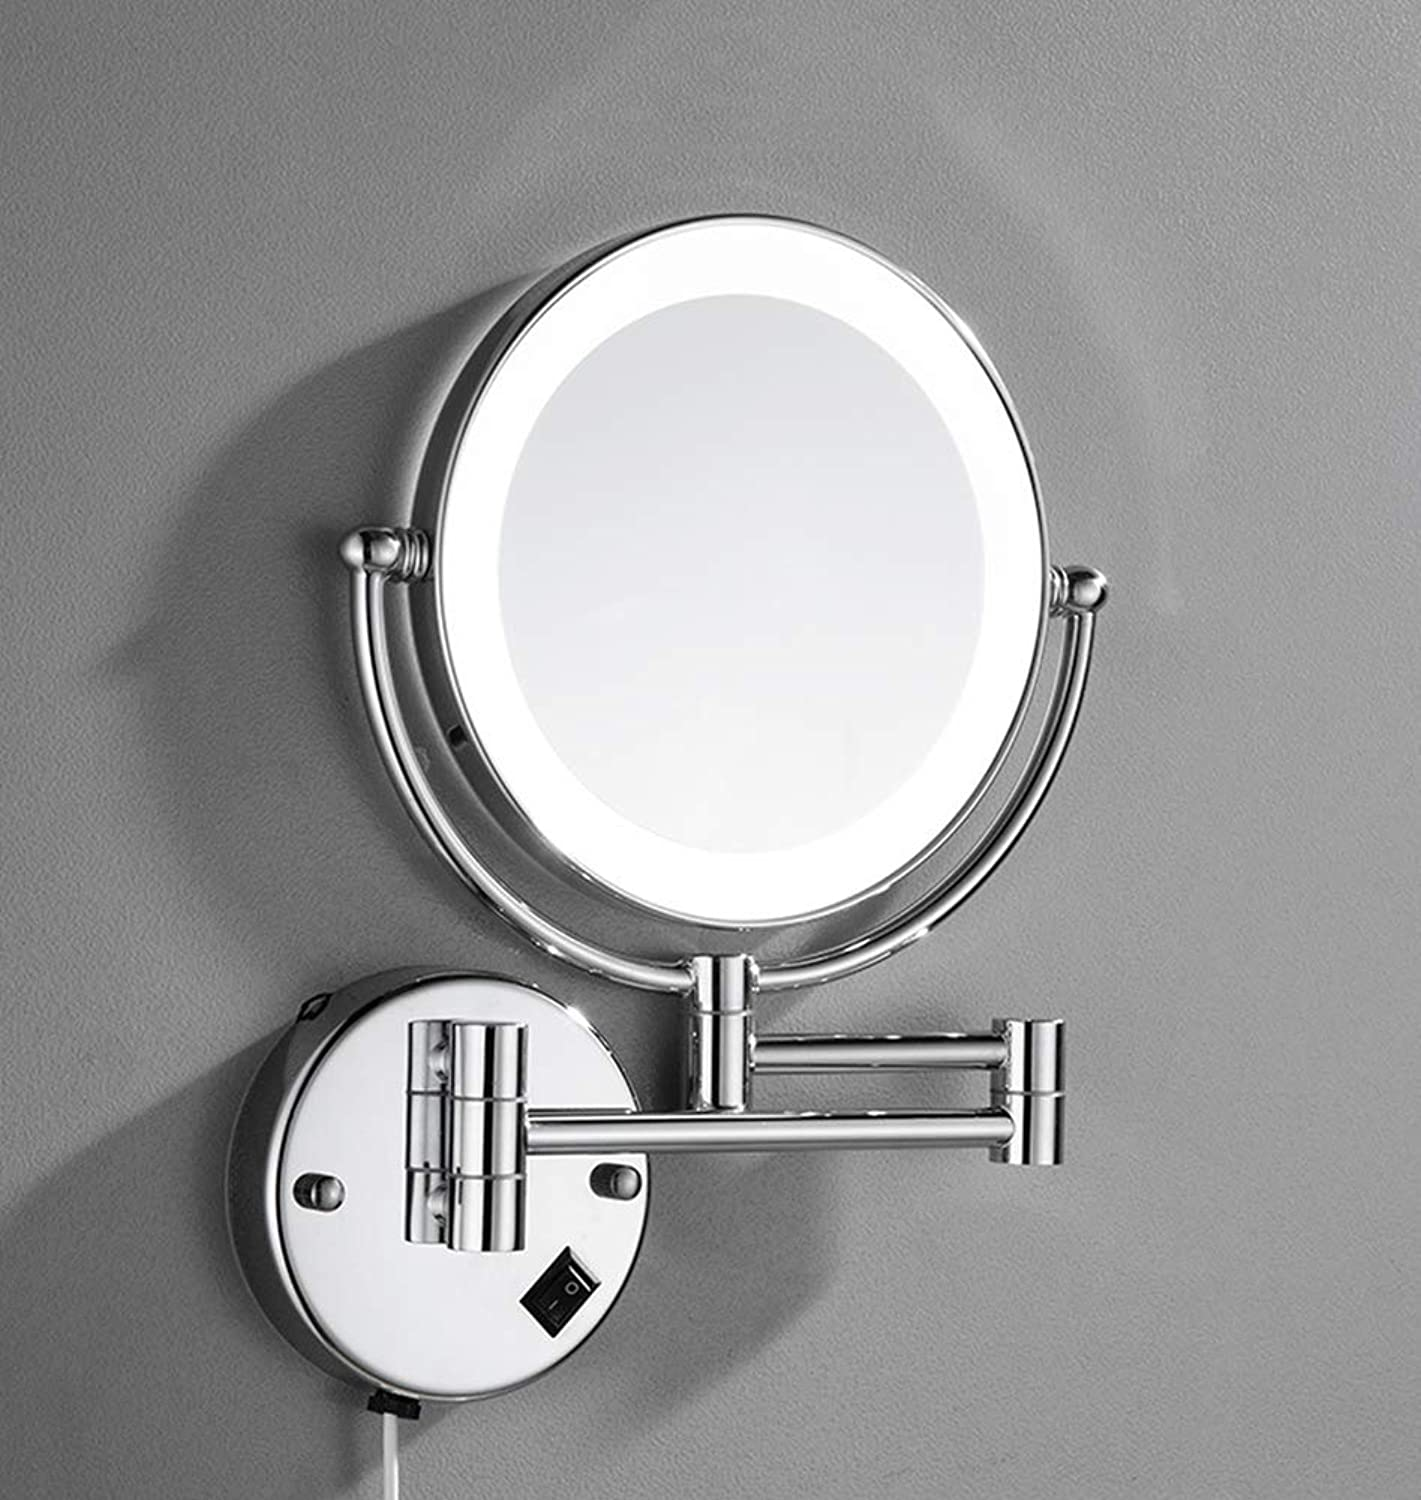 8  LED Double Sided Swivel Wall Mount Vanity Mirror-3X Magnification,17.4 Inch Extension,High color Light Source,Chromium, Punch Free for Easy Inssizetion